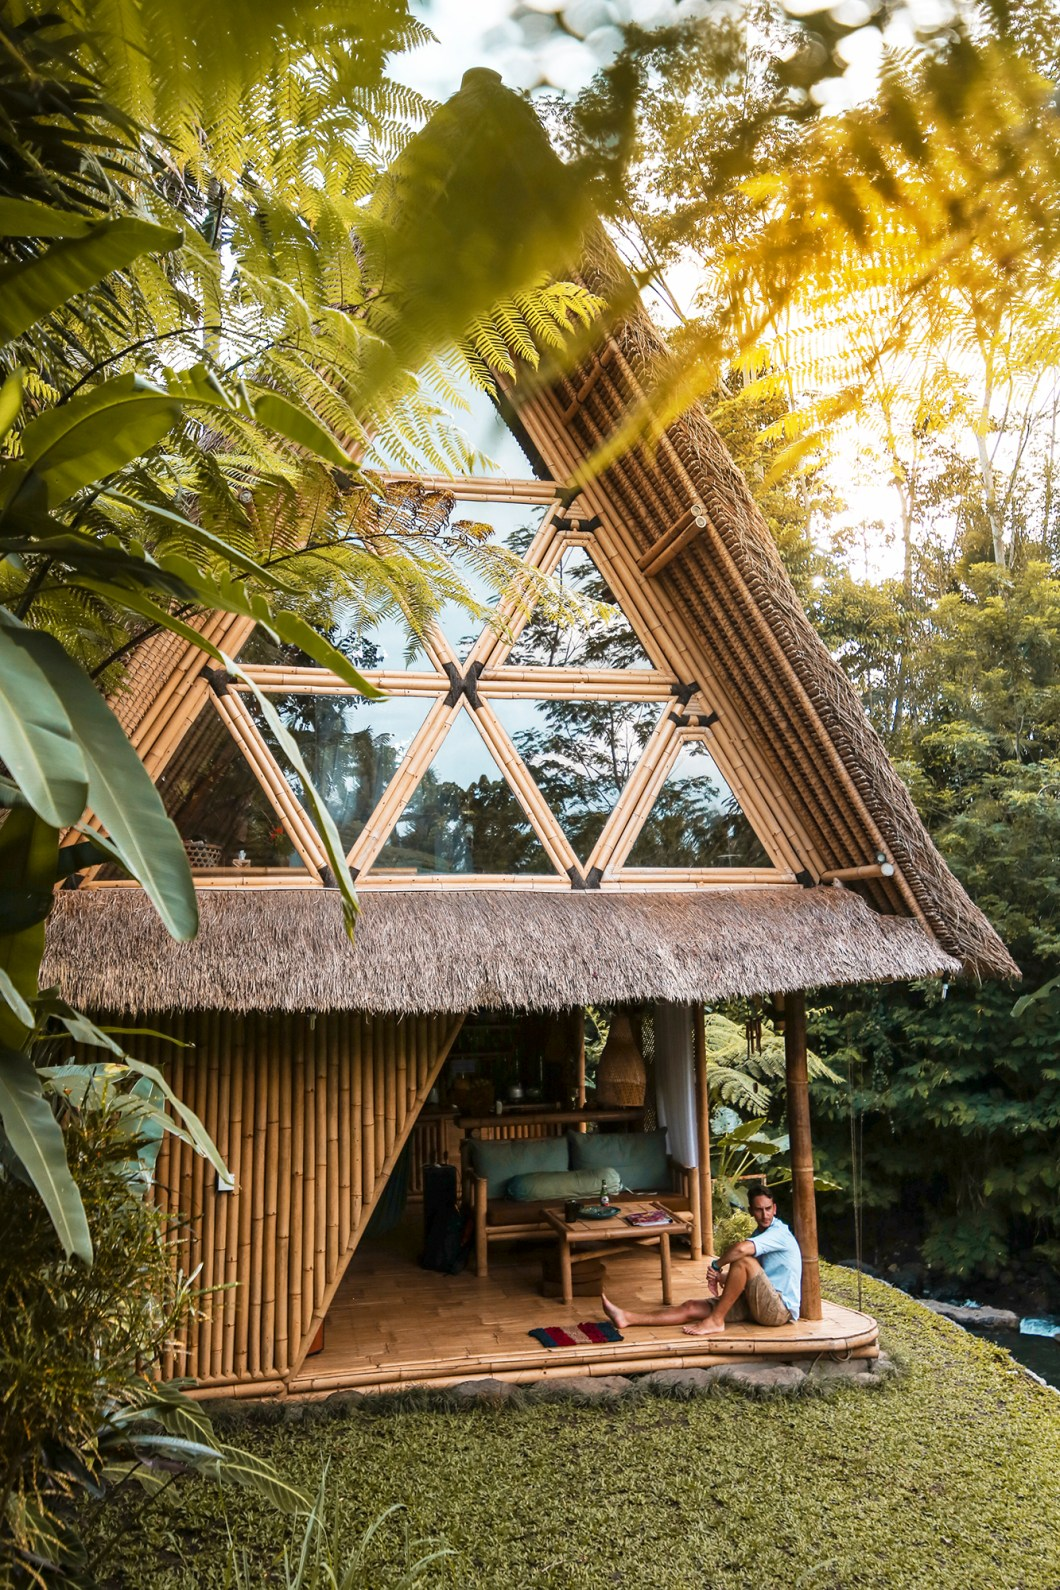 Hideout Bali | How Far From Home